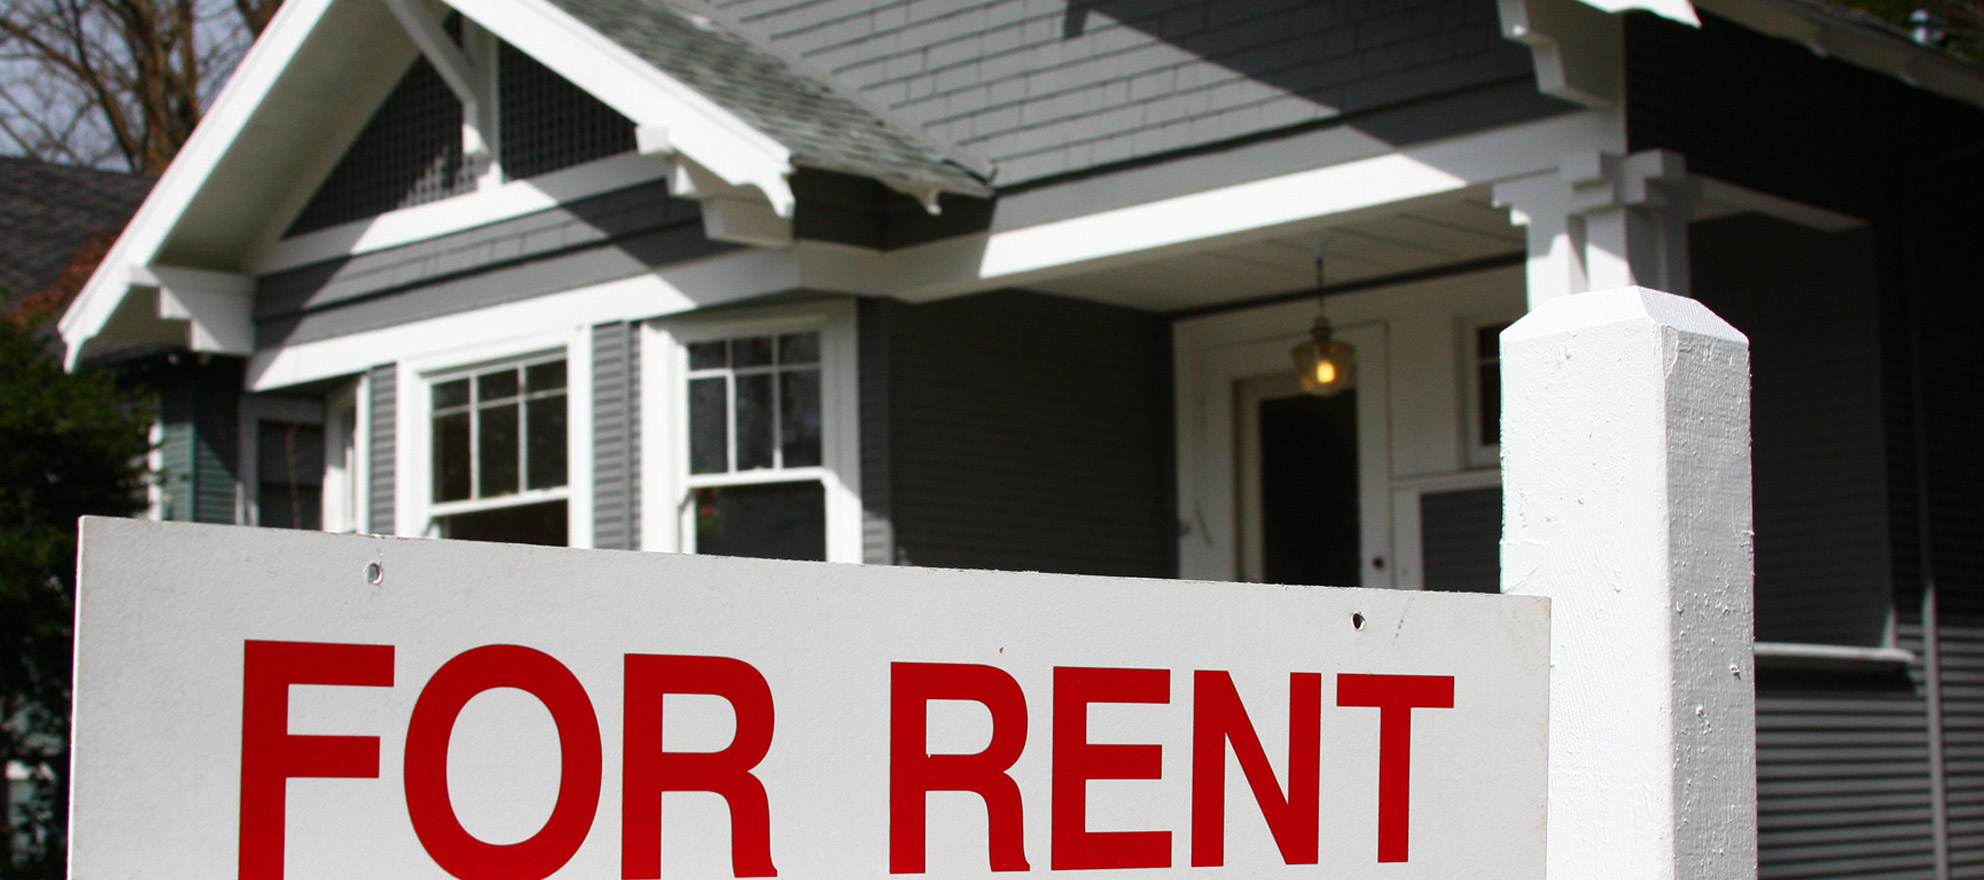 Quicken to allow Vrbo short-term rental income for mortgage qualification